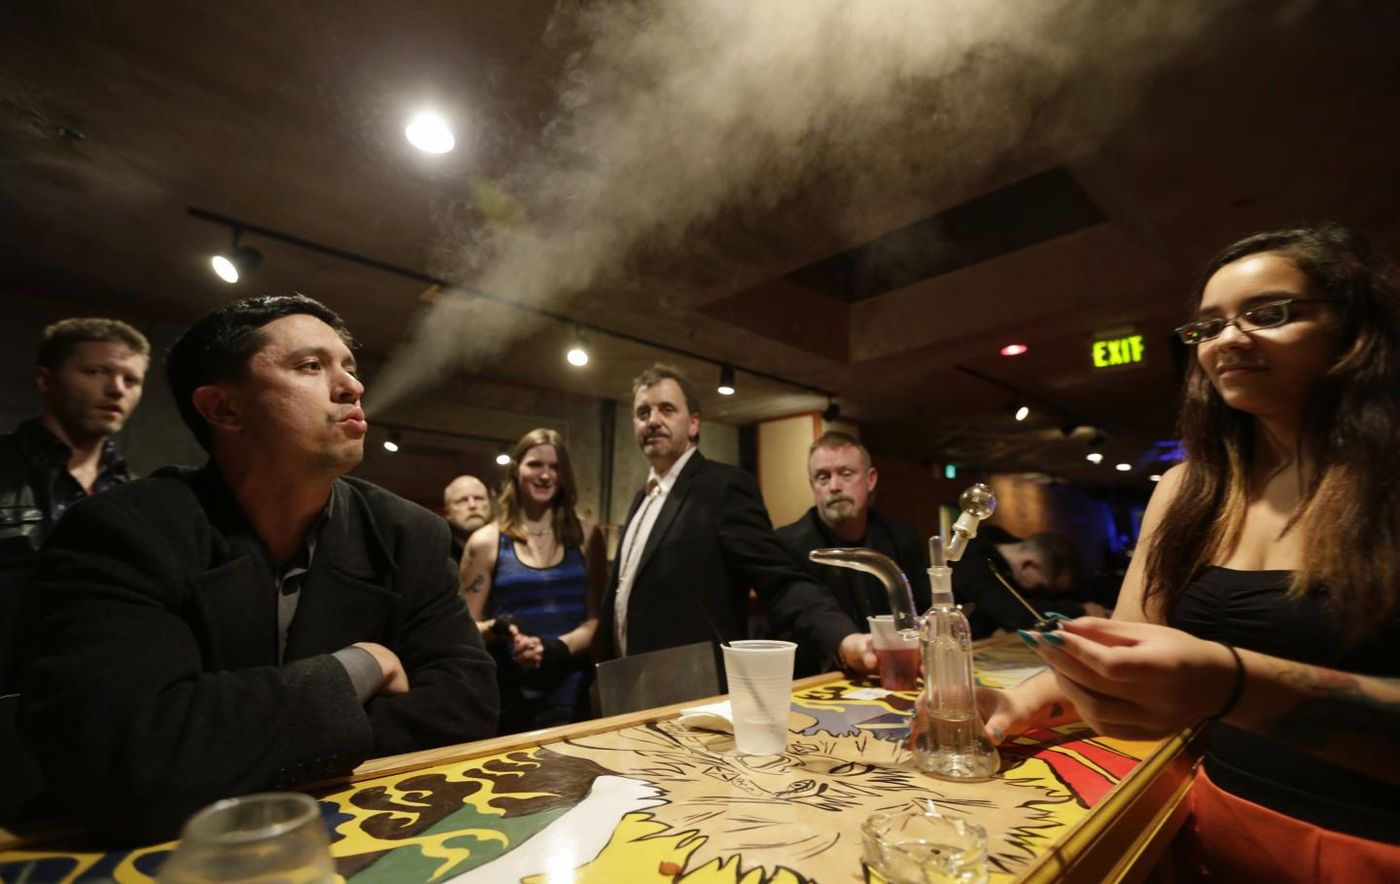 Marijuana lounges have nevada casino industry on alert